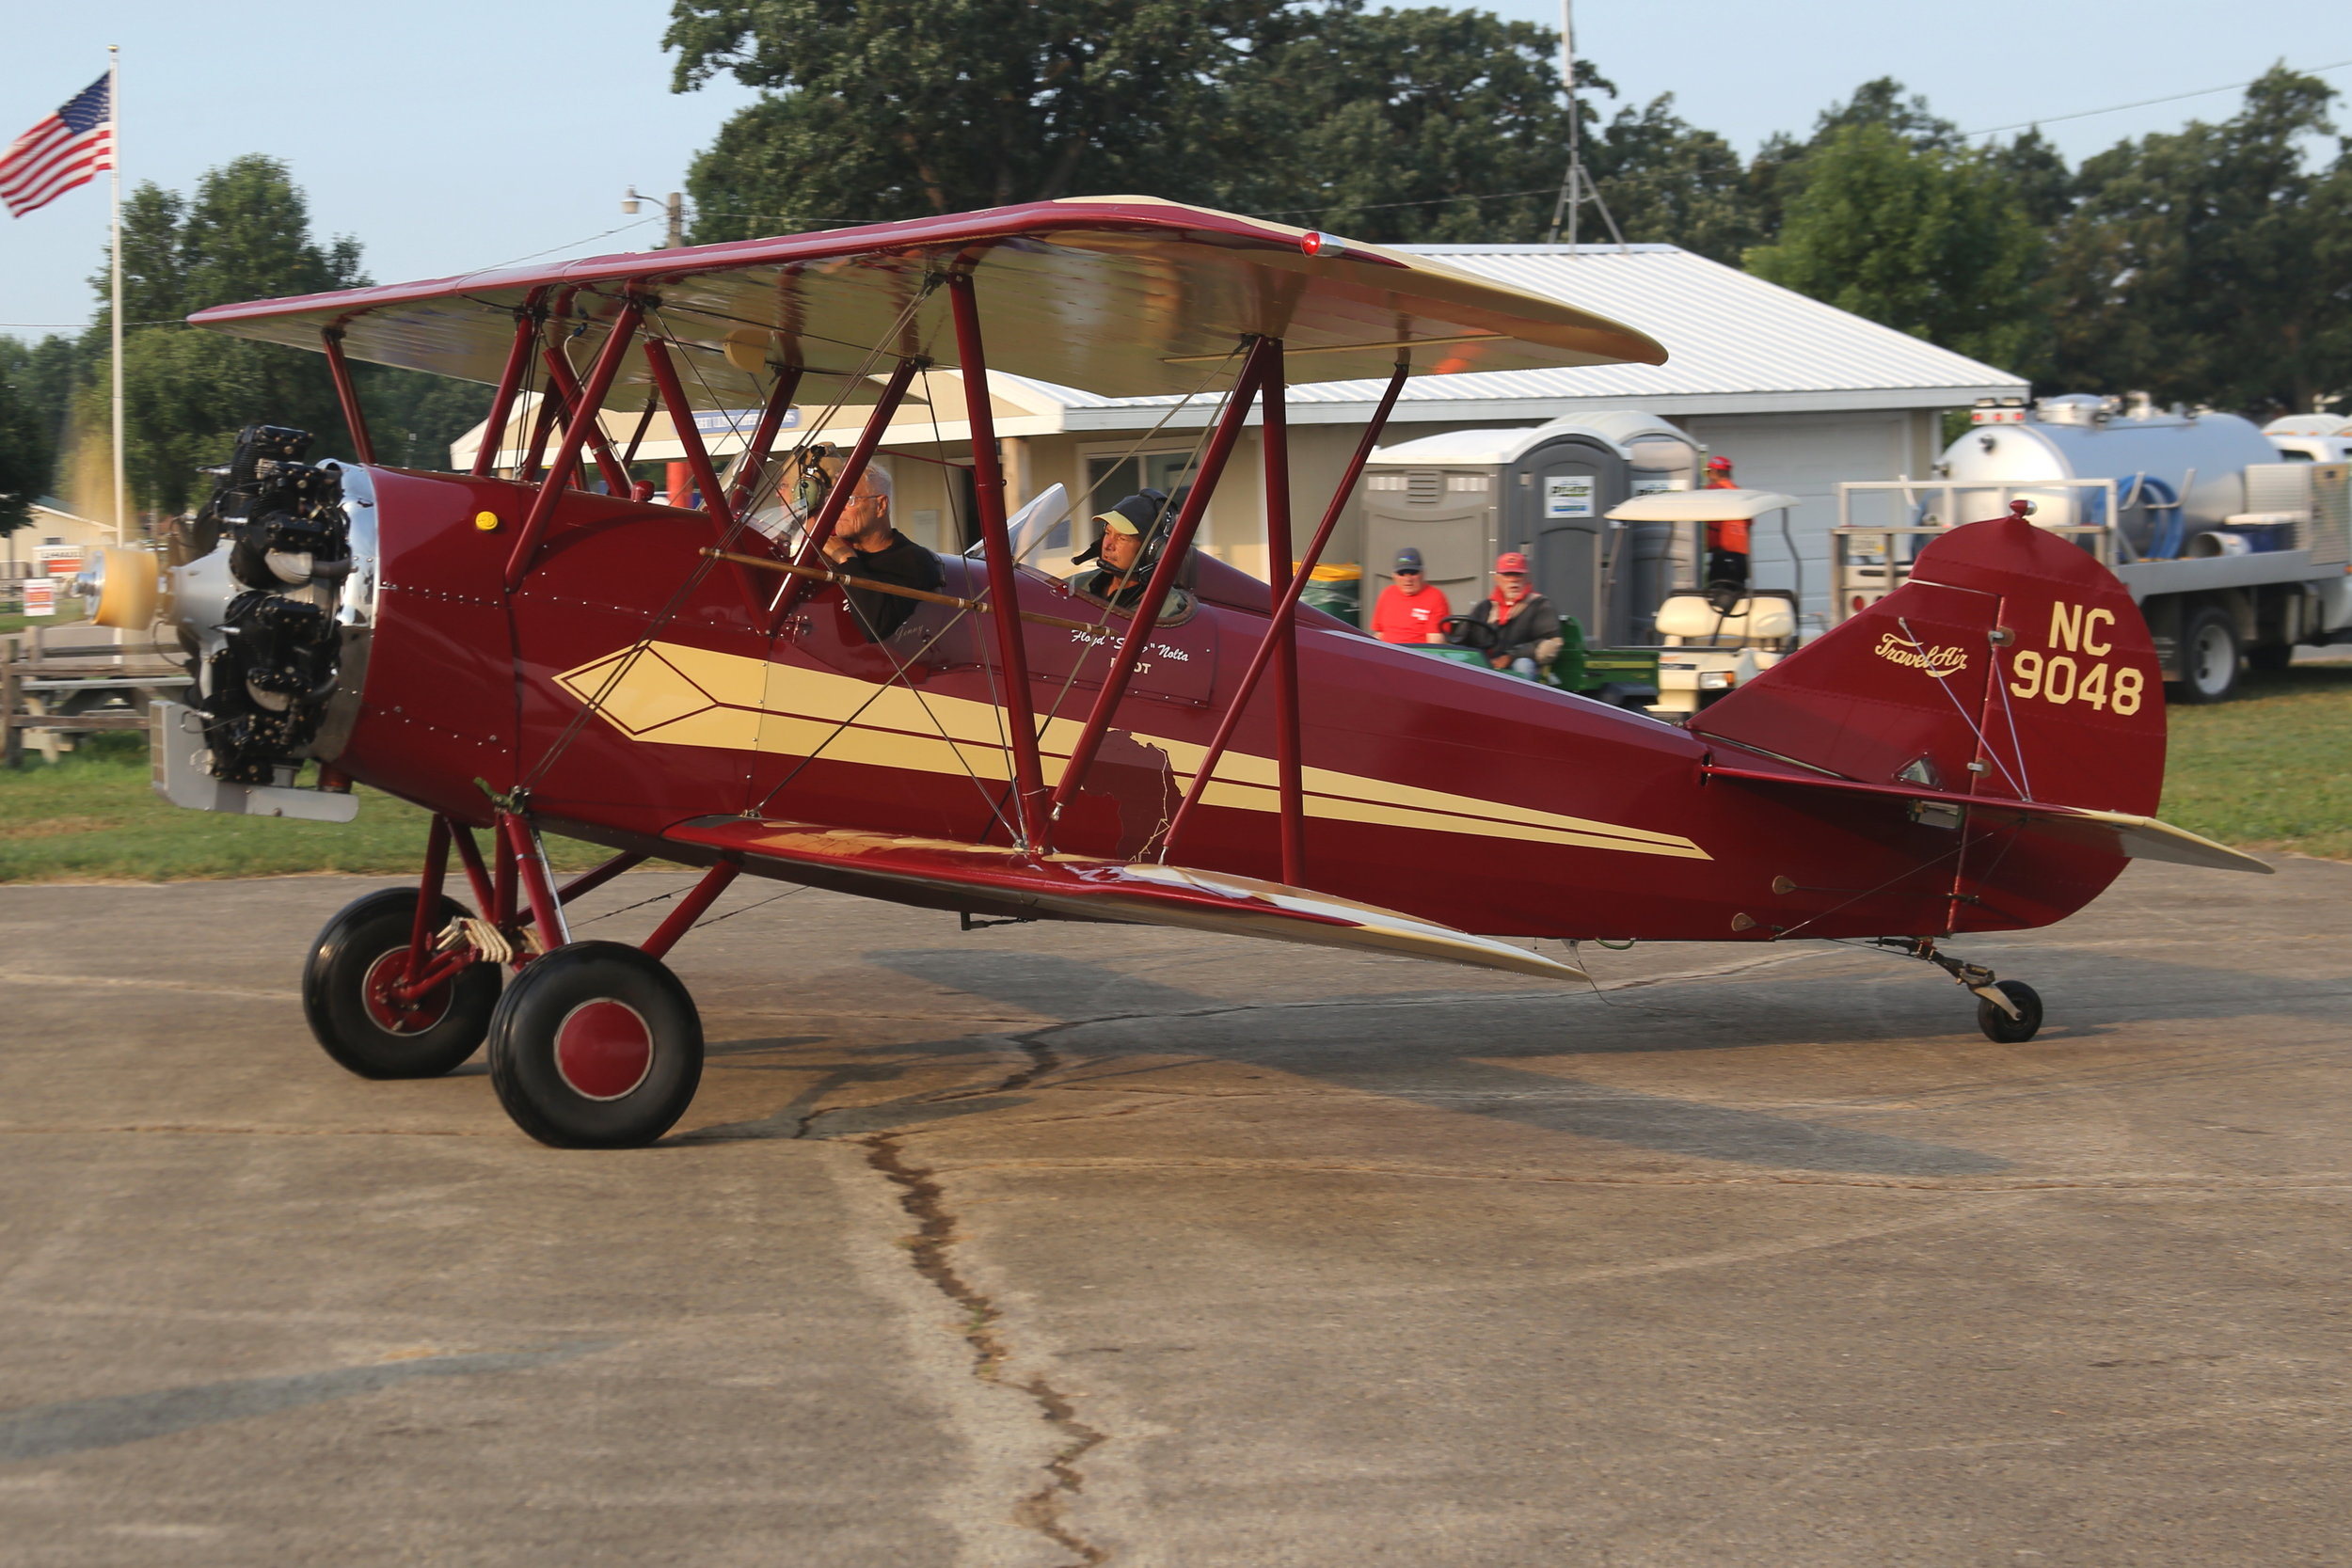 NC9048 Travel Air E-4000 (manufactured in 1928) taken at Oshkosh 23rd July 2018 by John Wood